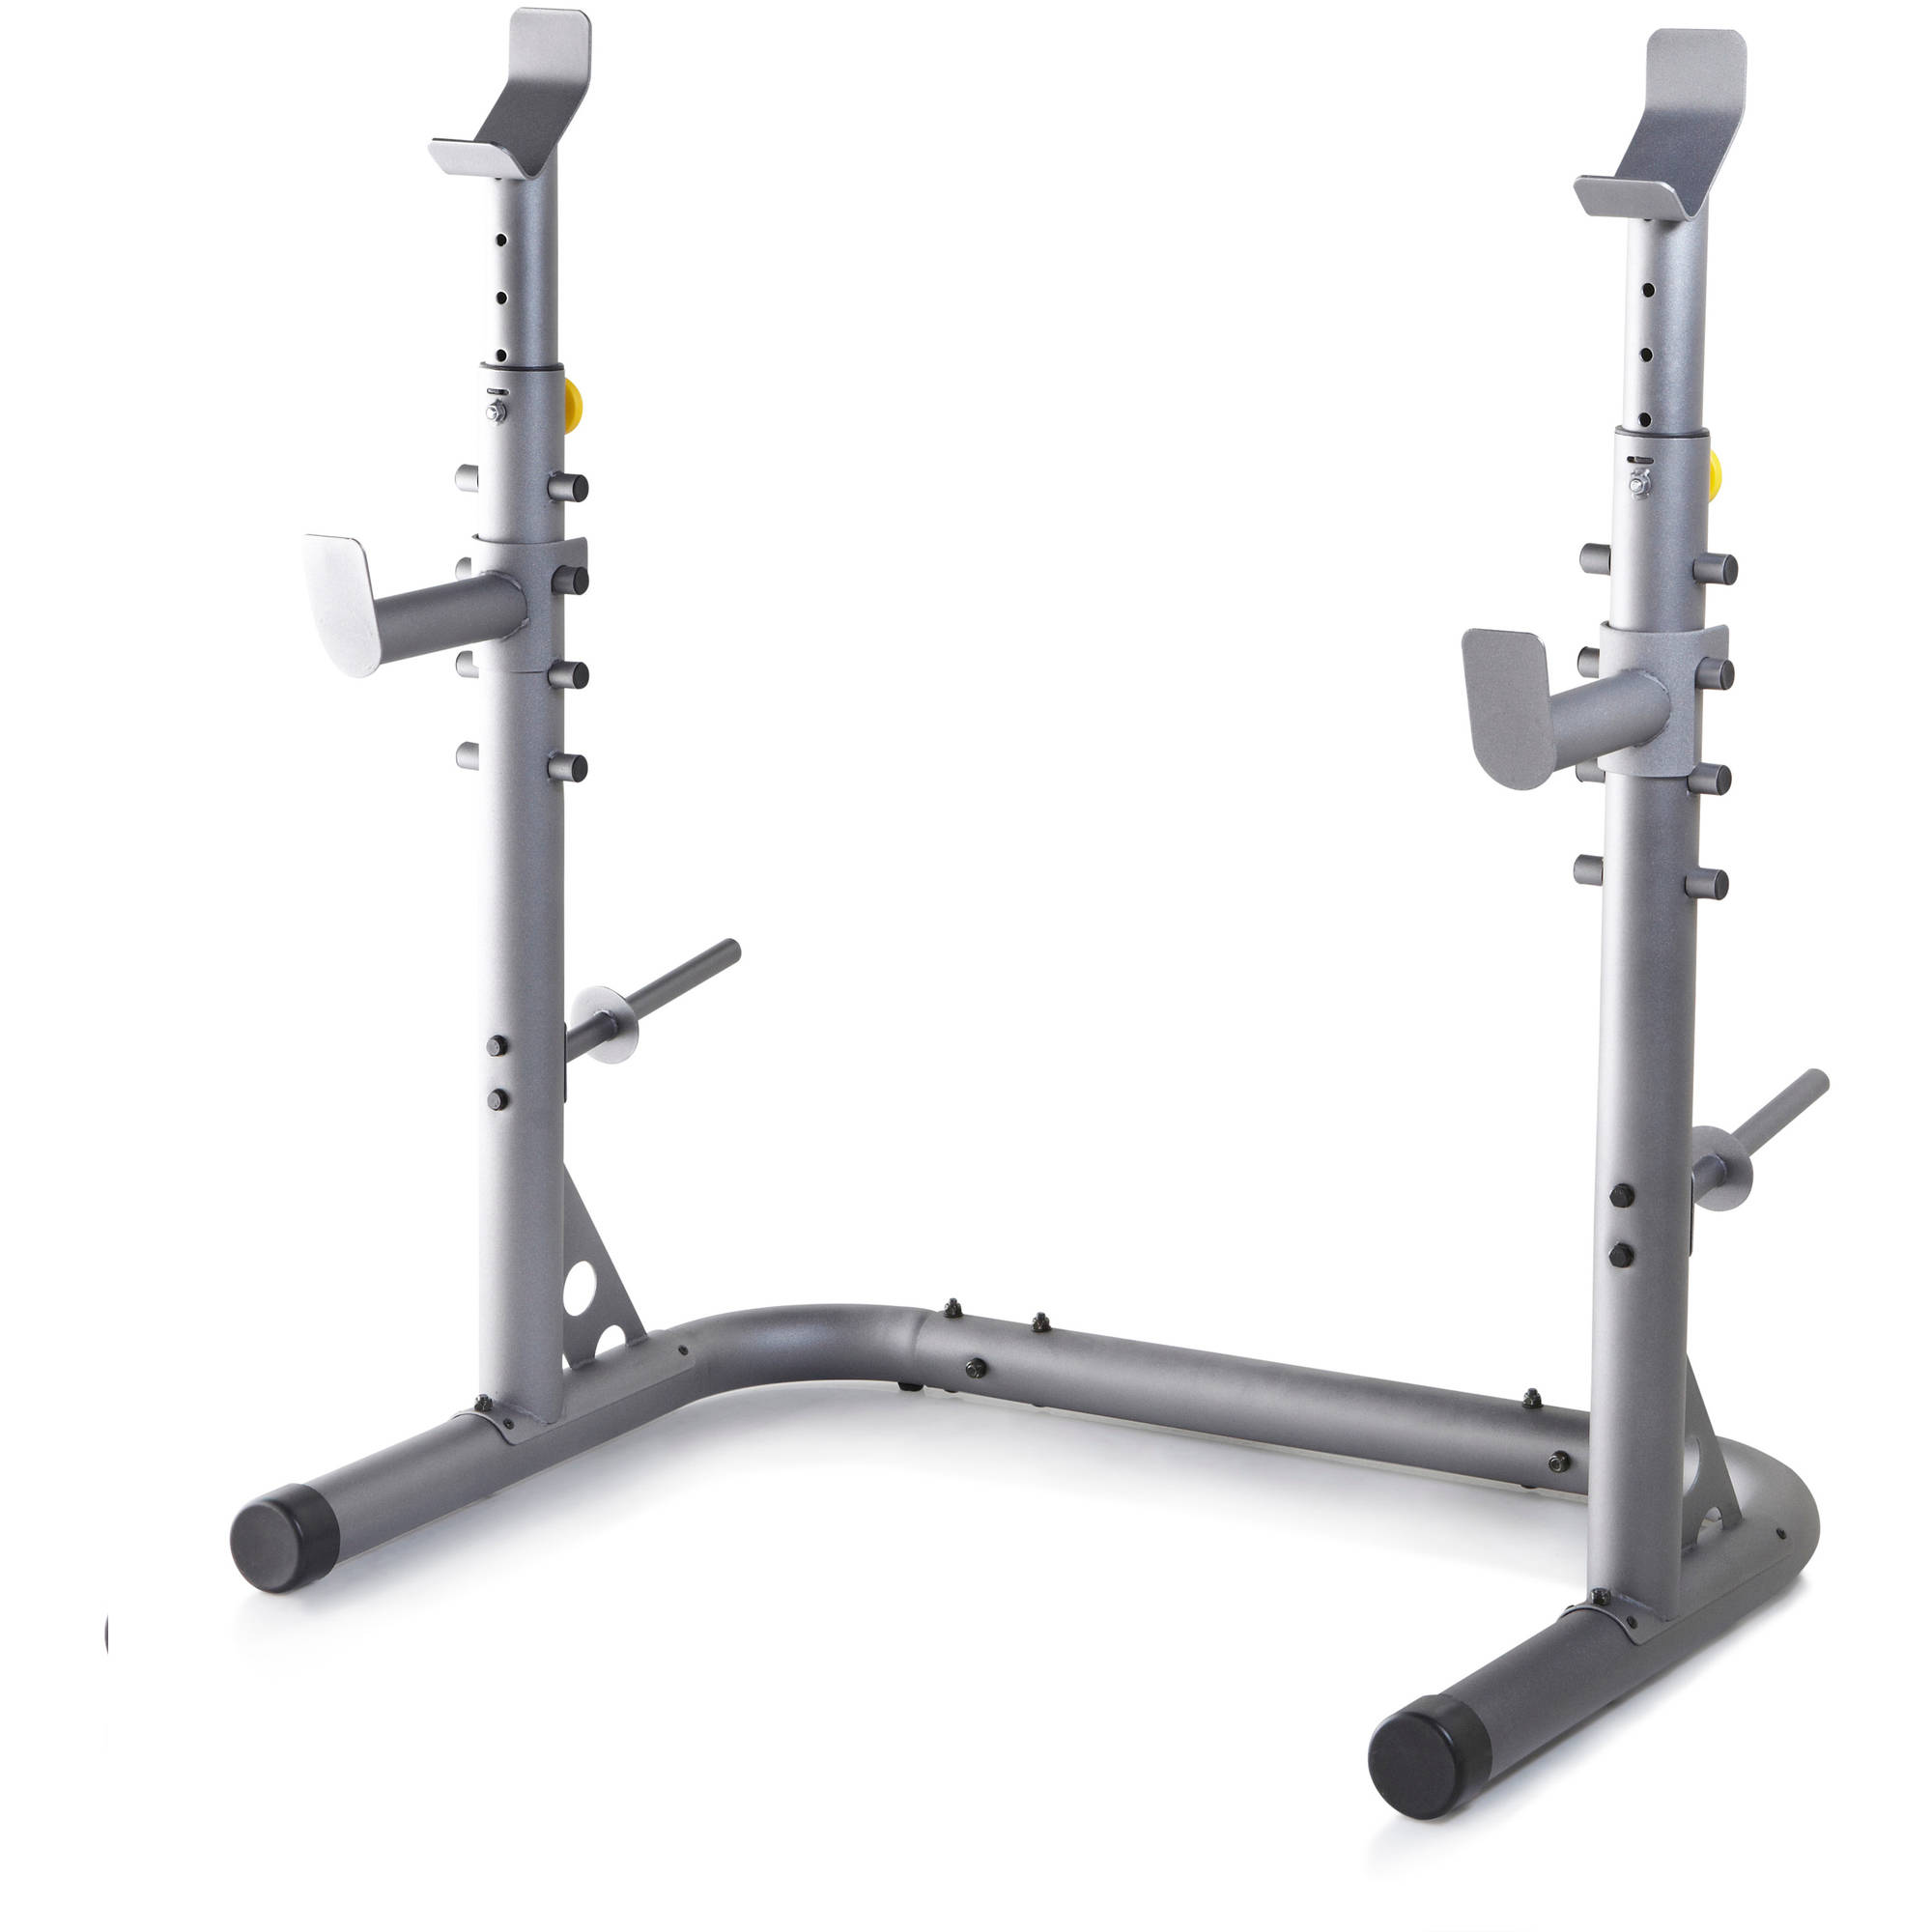 Squat Rack Stands | Swuat Rack | Squat Rack for Sale